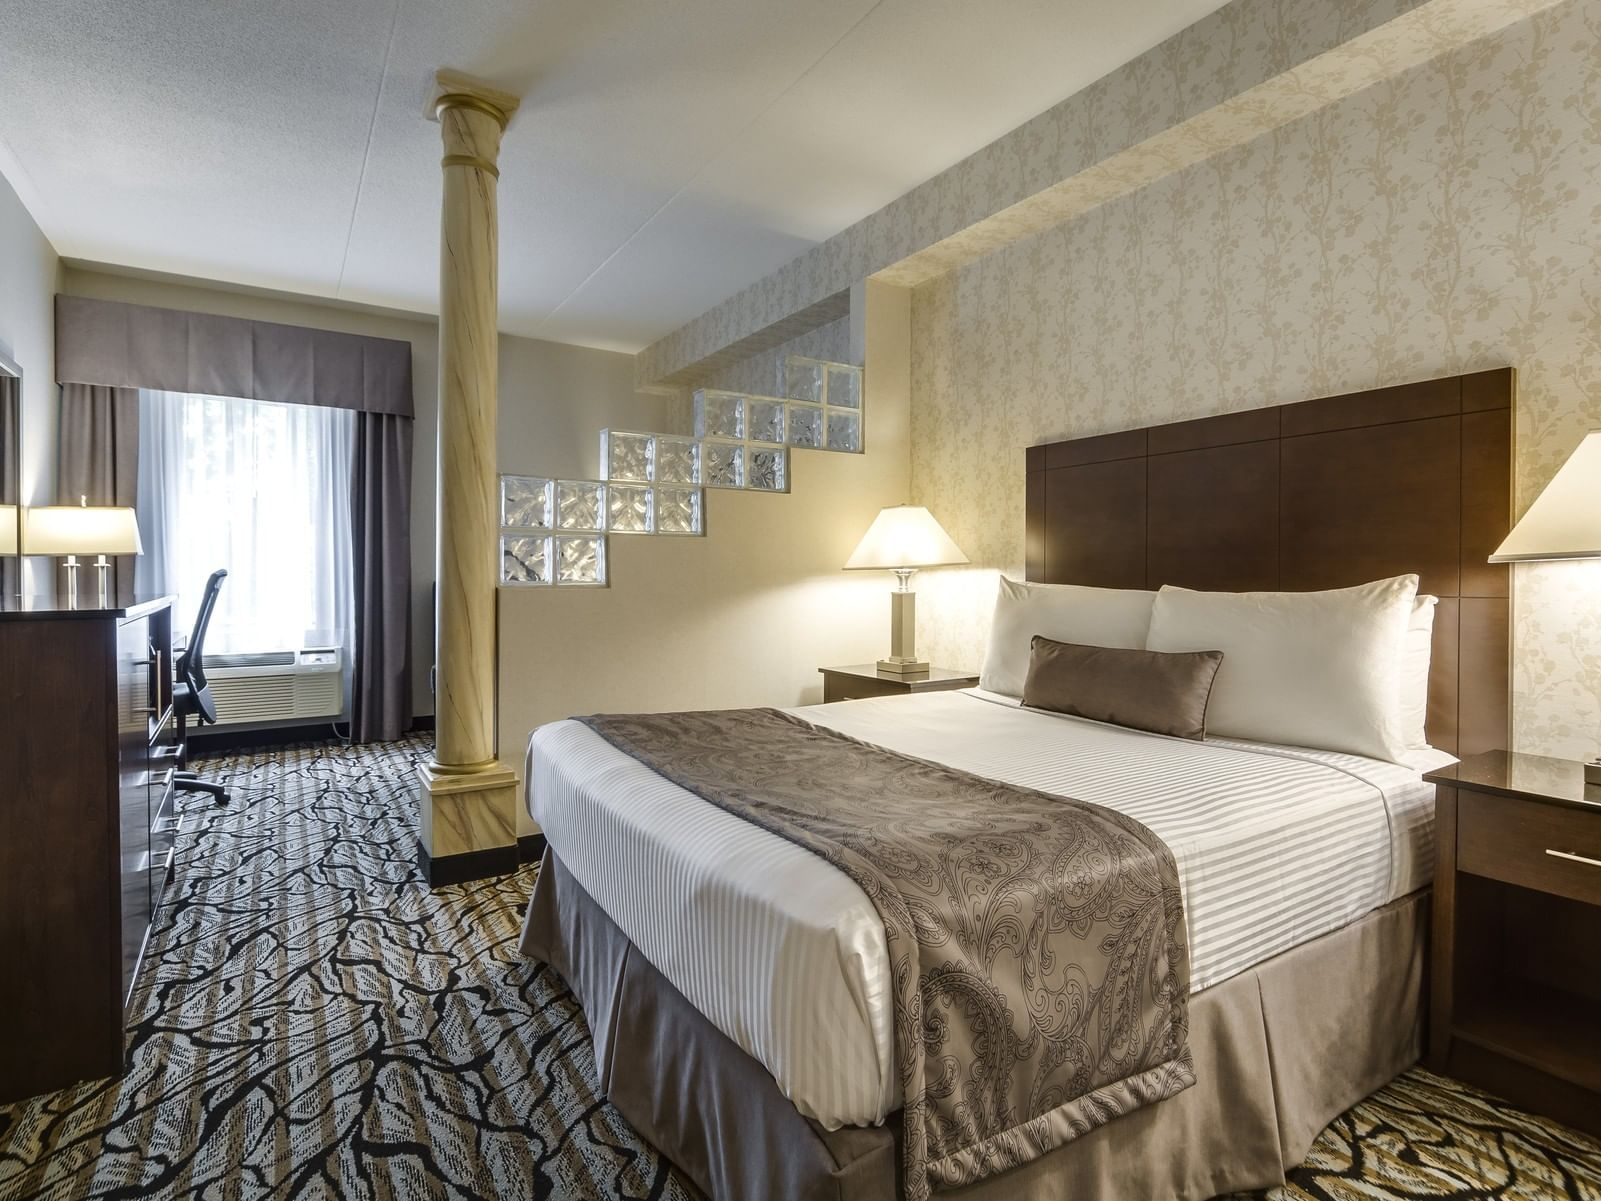 One King Bed - Monte Carlo Inns Oakville Suites